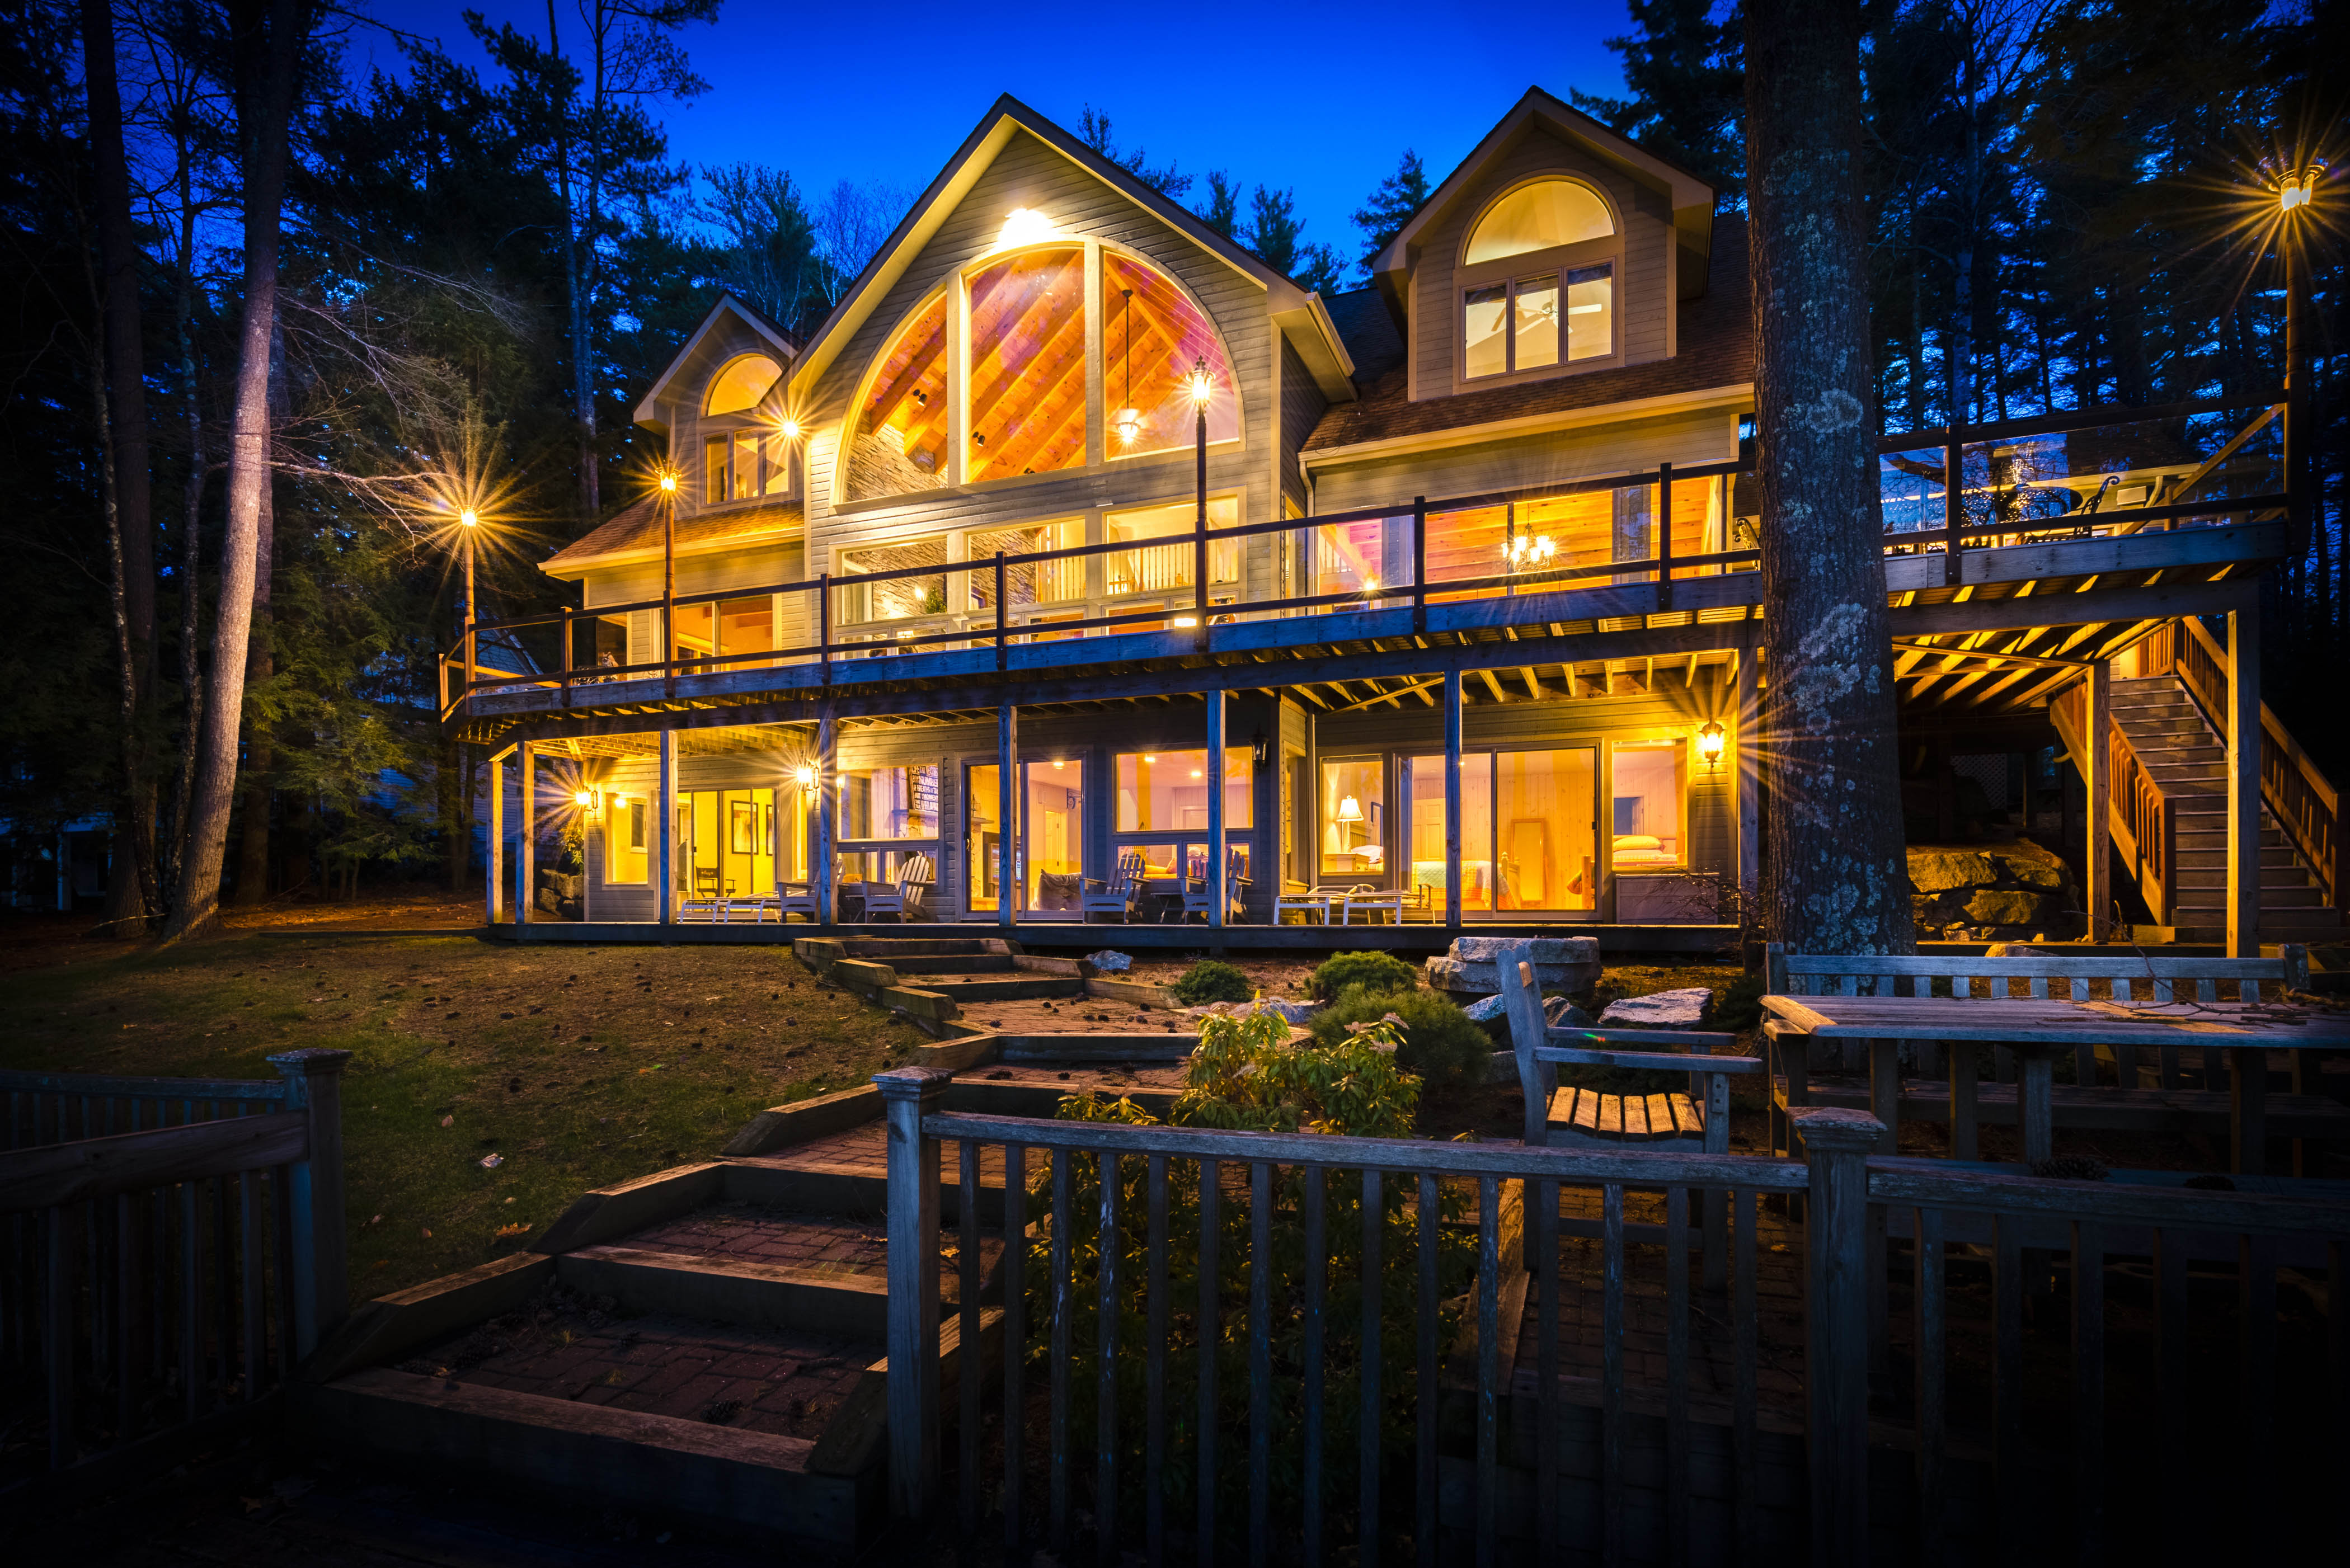 Single Family Home for Sale at 591 Forest, Wolfeboro Wolfeboro, New Hampshire, 03894 United States